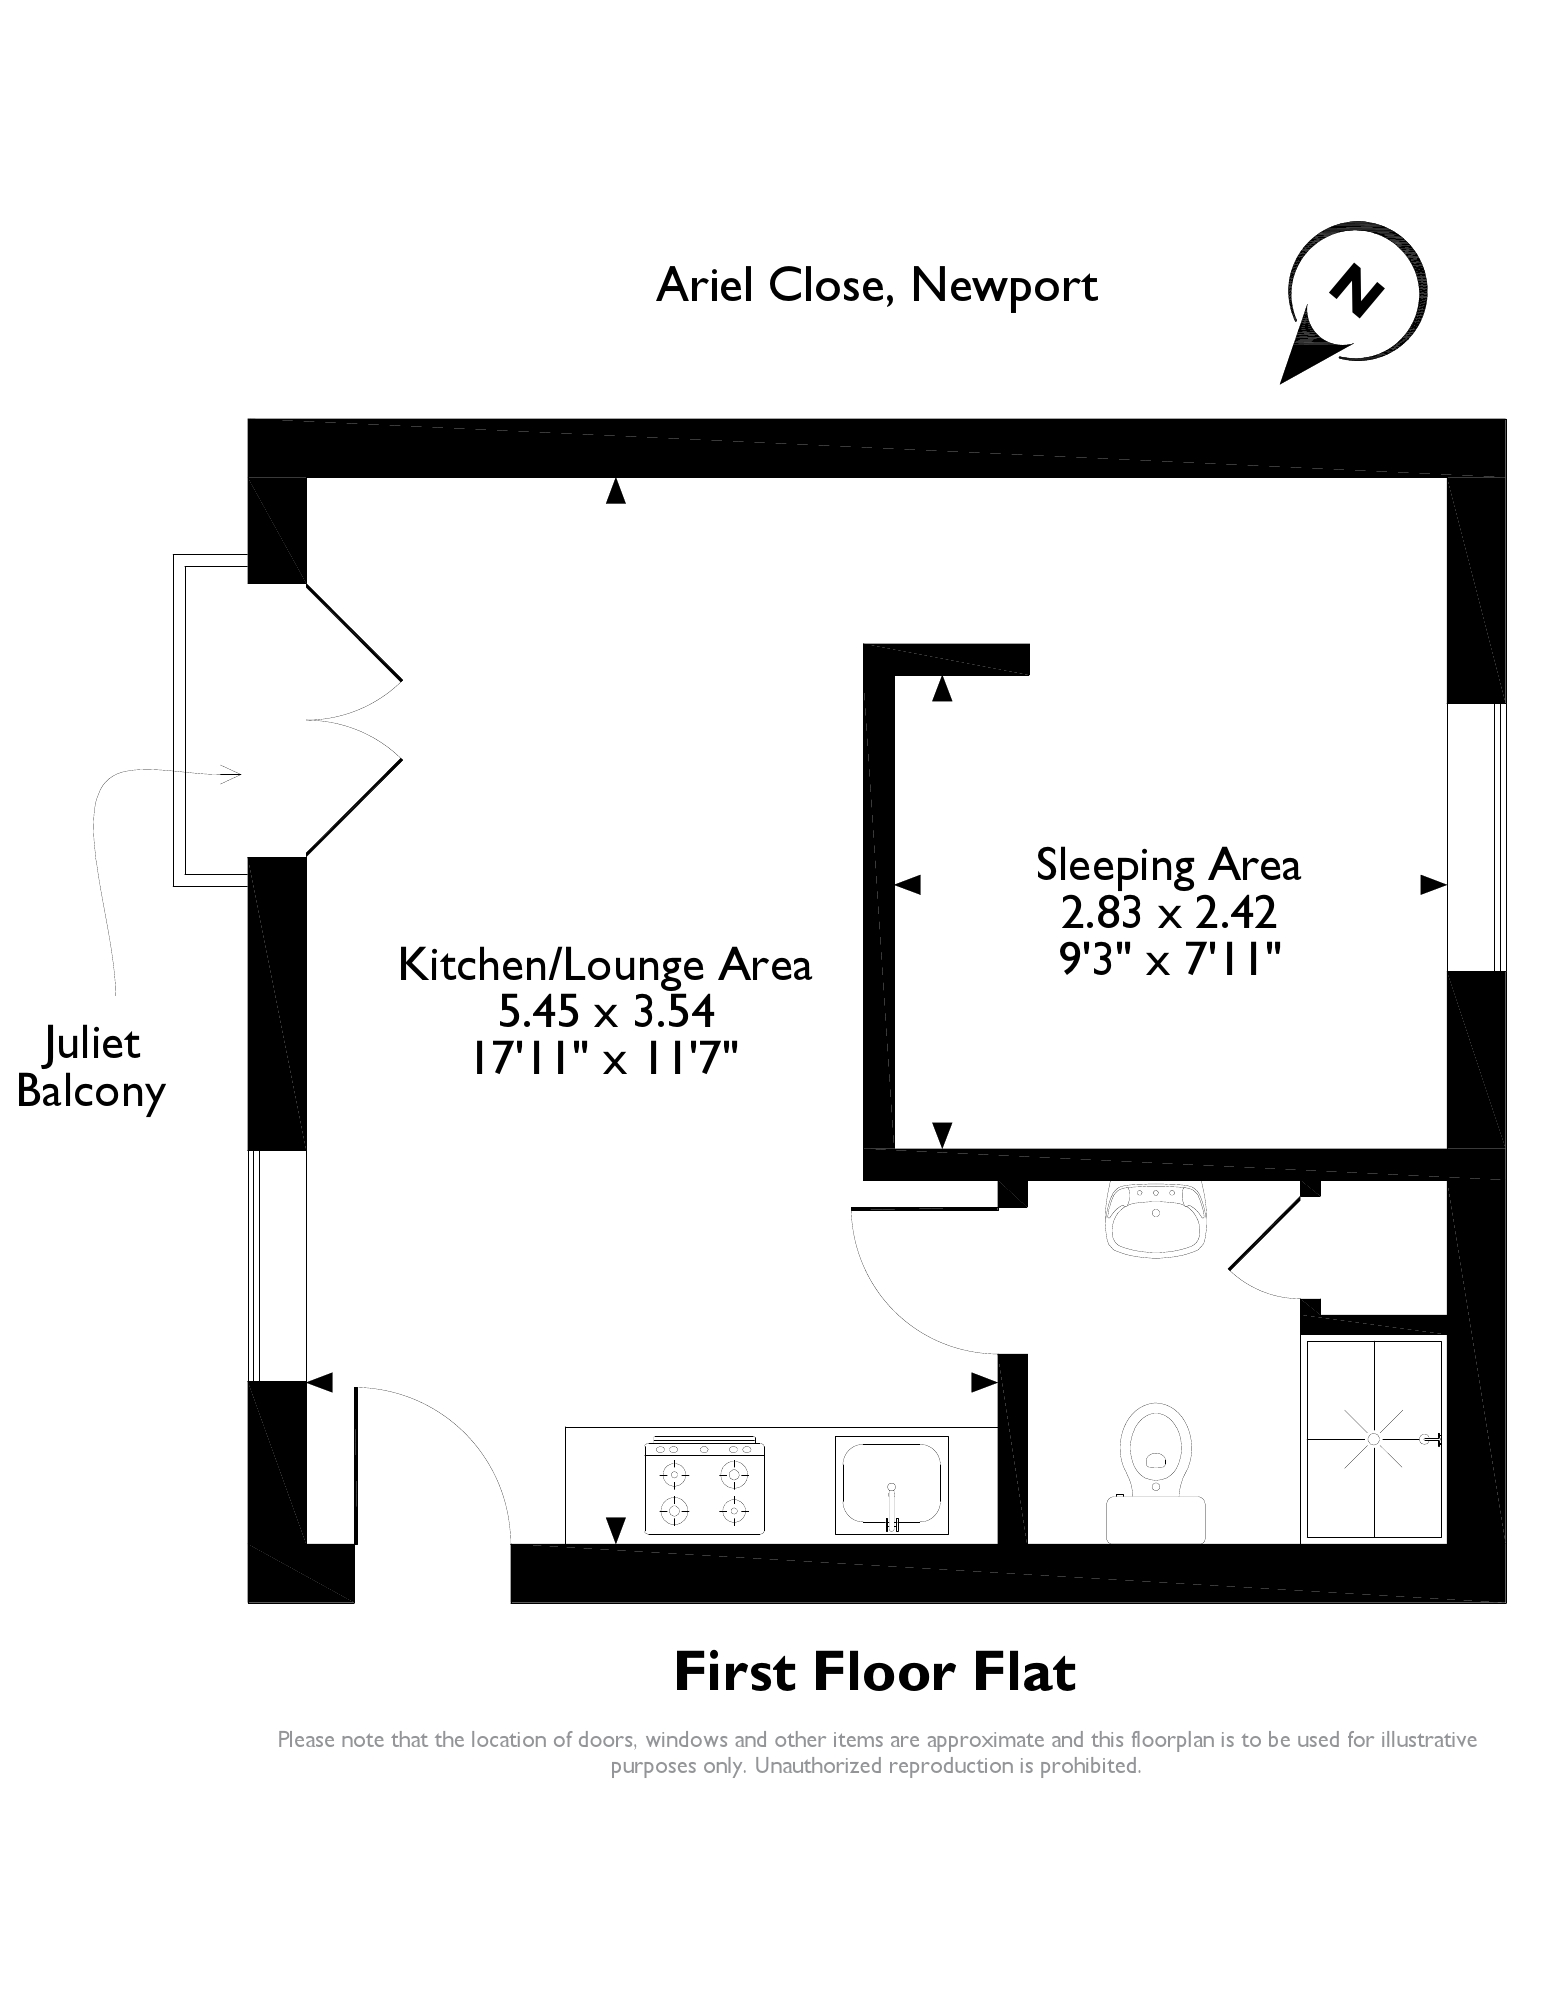 Ariel Close, Newport, NP20 floor plan